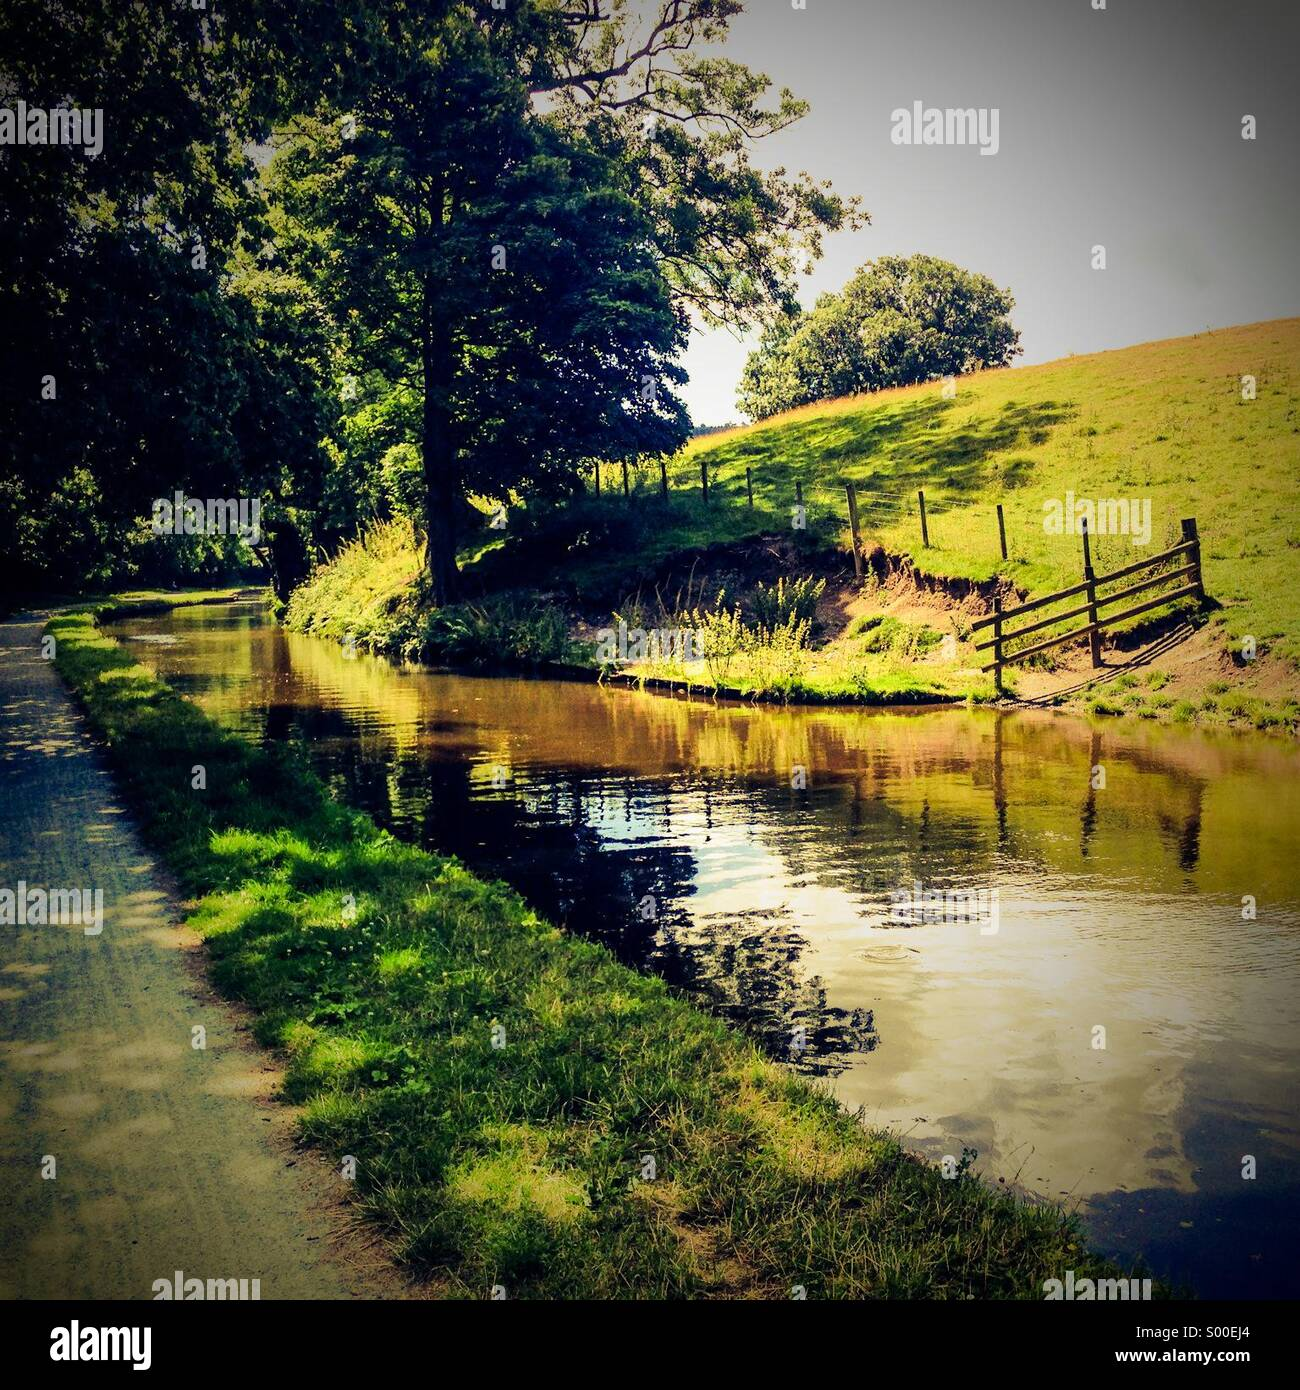 Summer canal scene - Stock Image